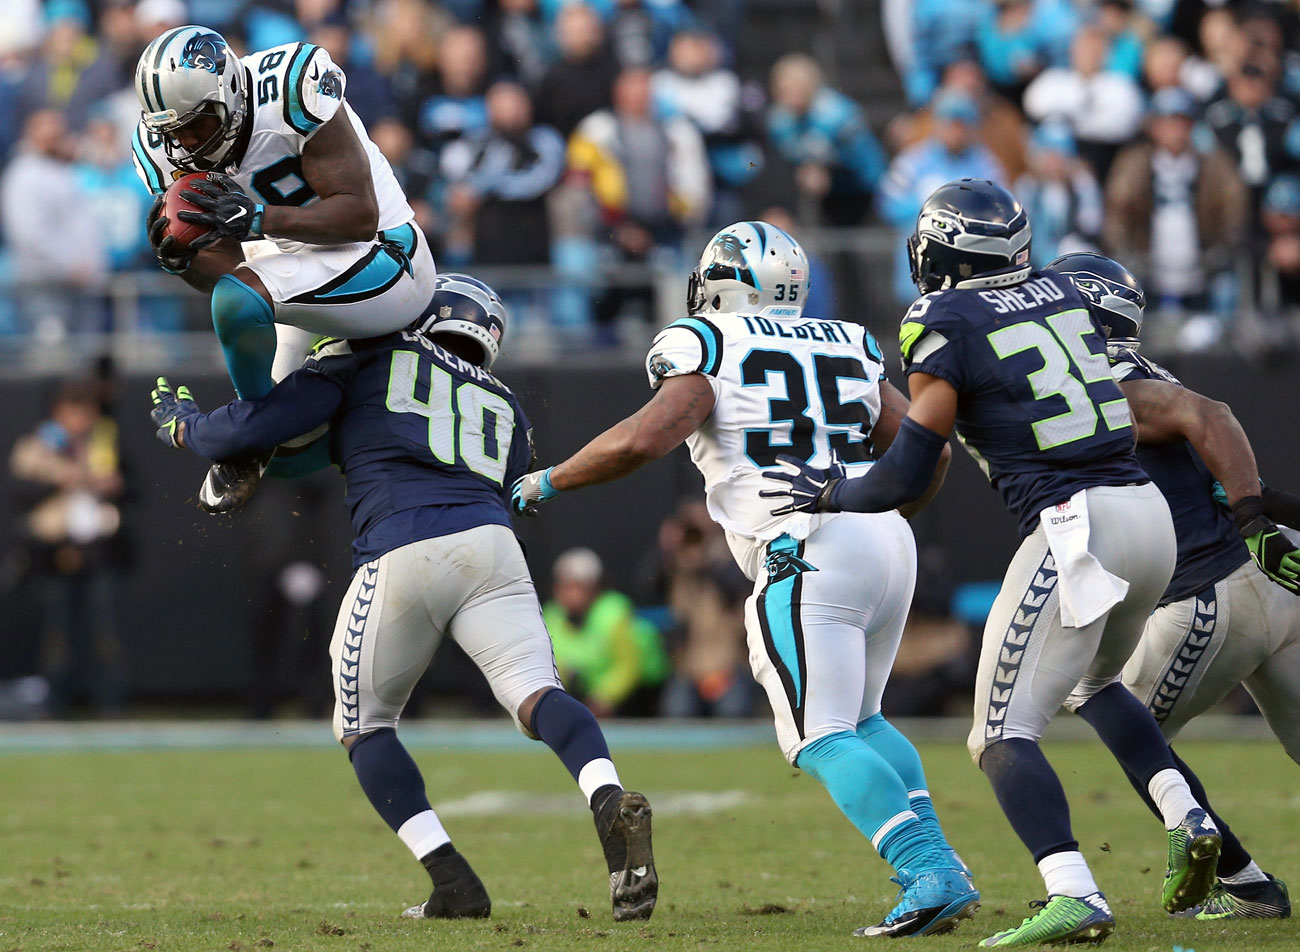 After three knee surgeries, veteran linebacker Thomas Davis still had the hops to leap and recover the onside kick in the Panthers-Seahawks divisonal-round game.